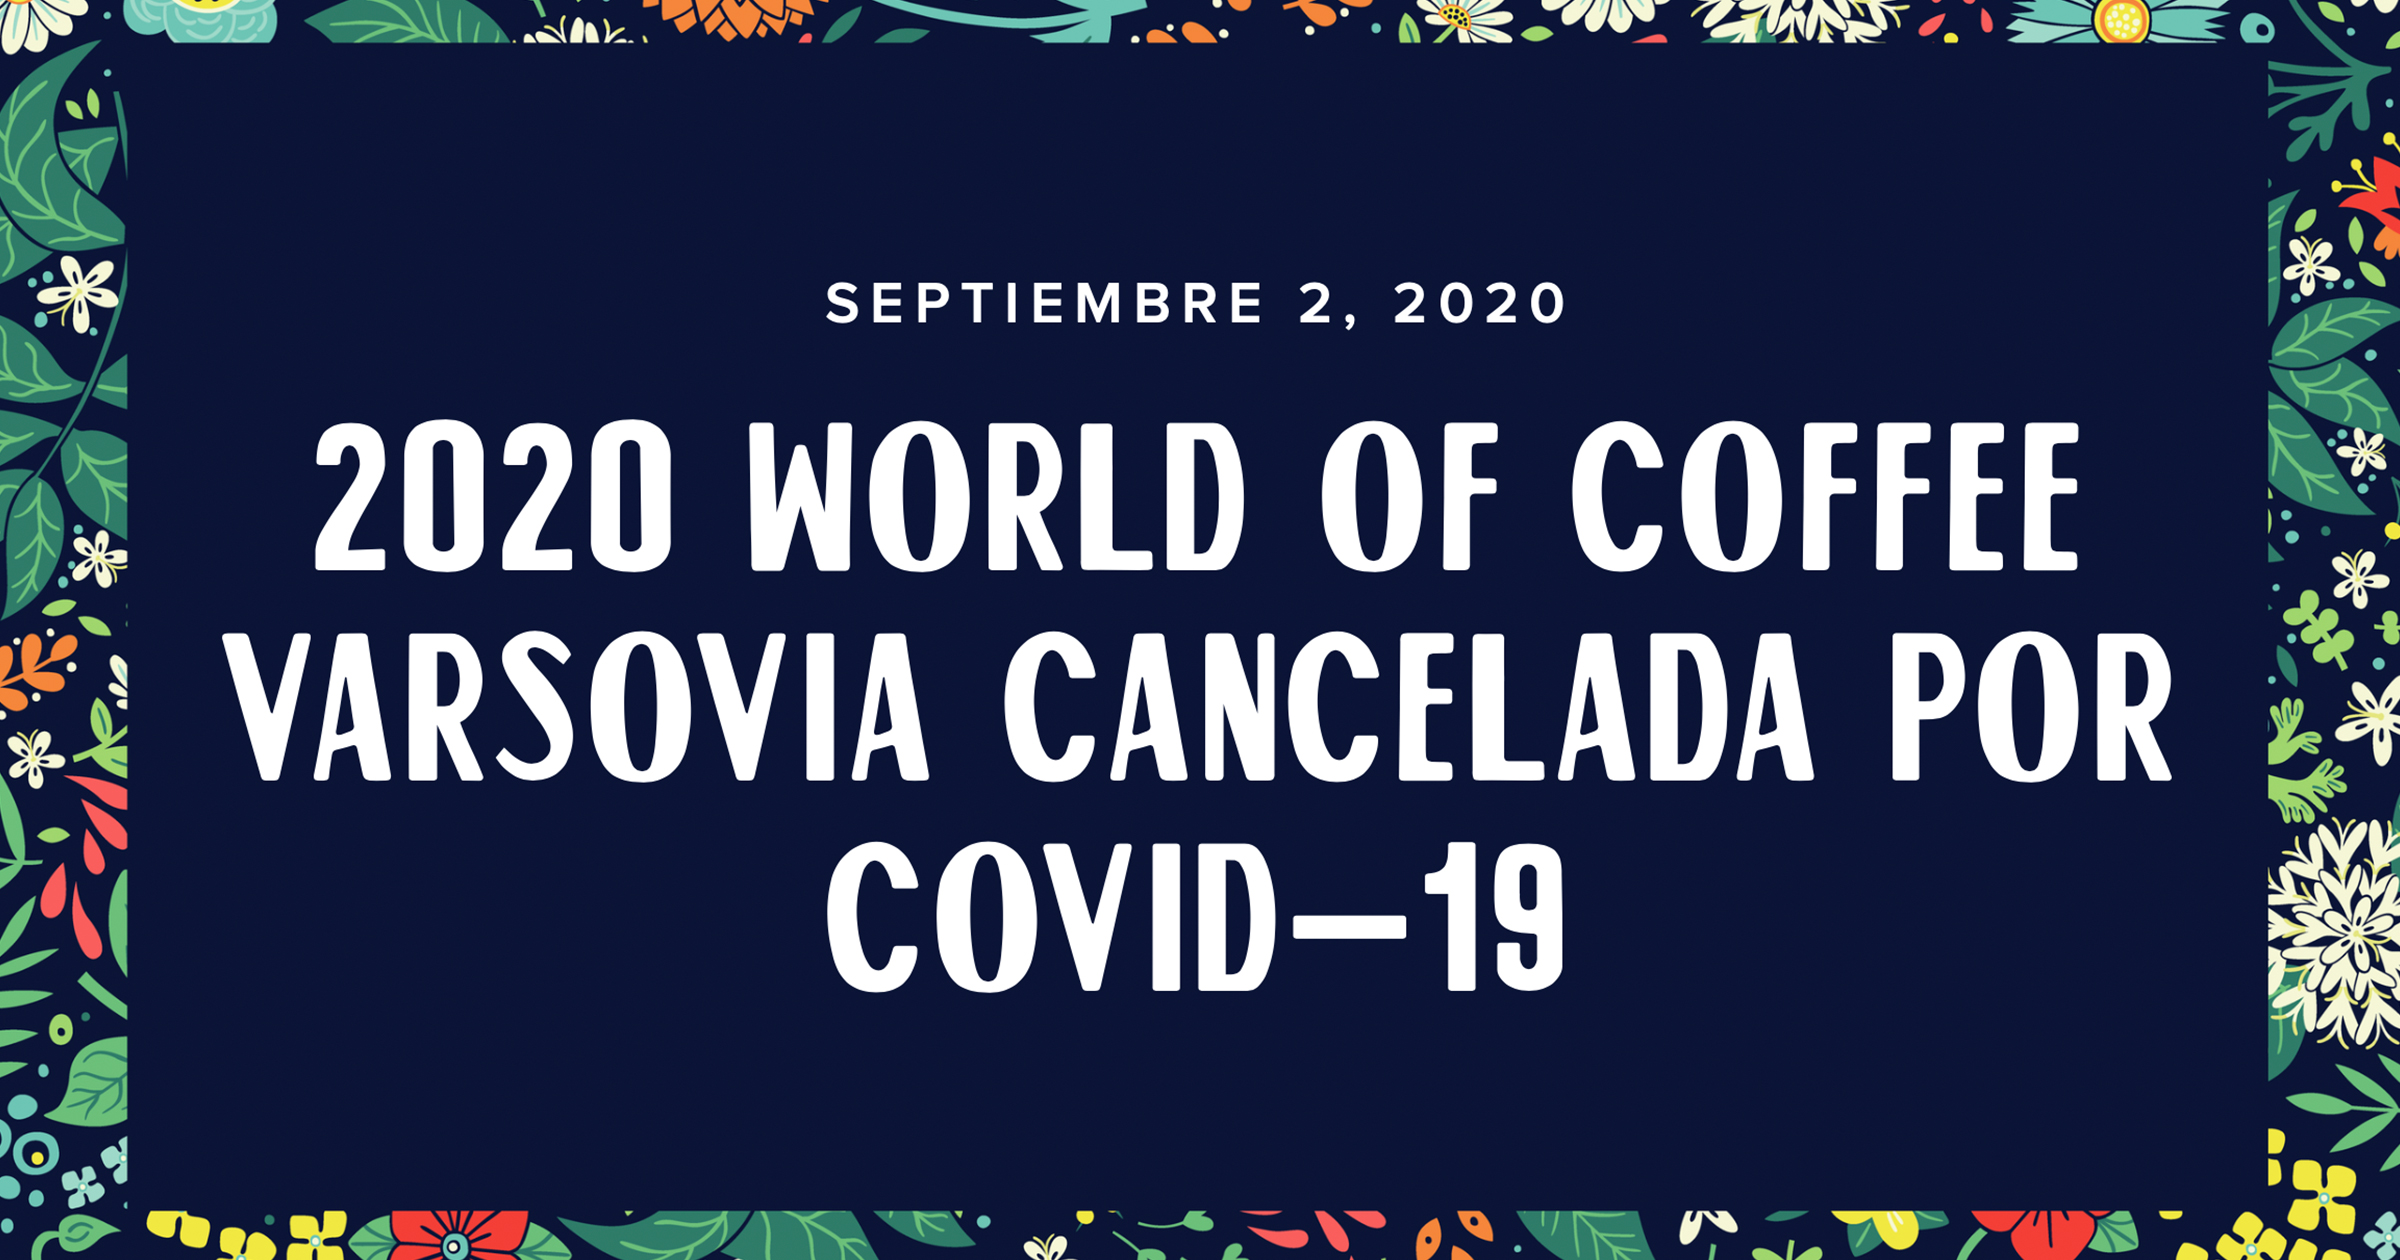 2020 World Of Coffee Varsovia cancelada por COVID-19